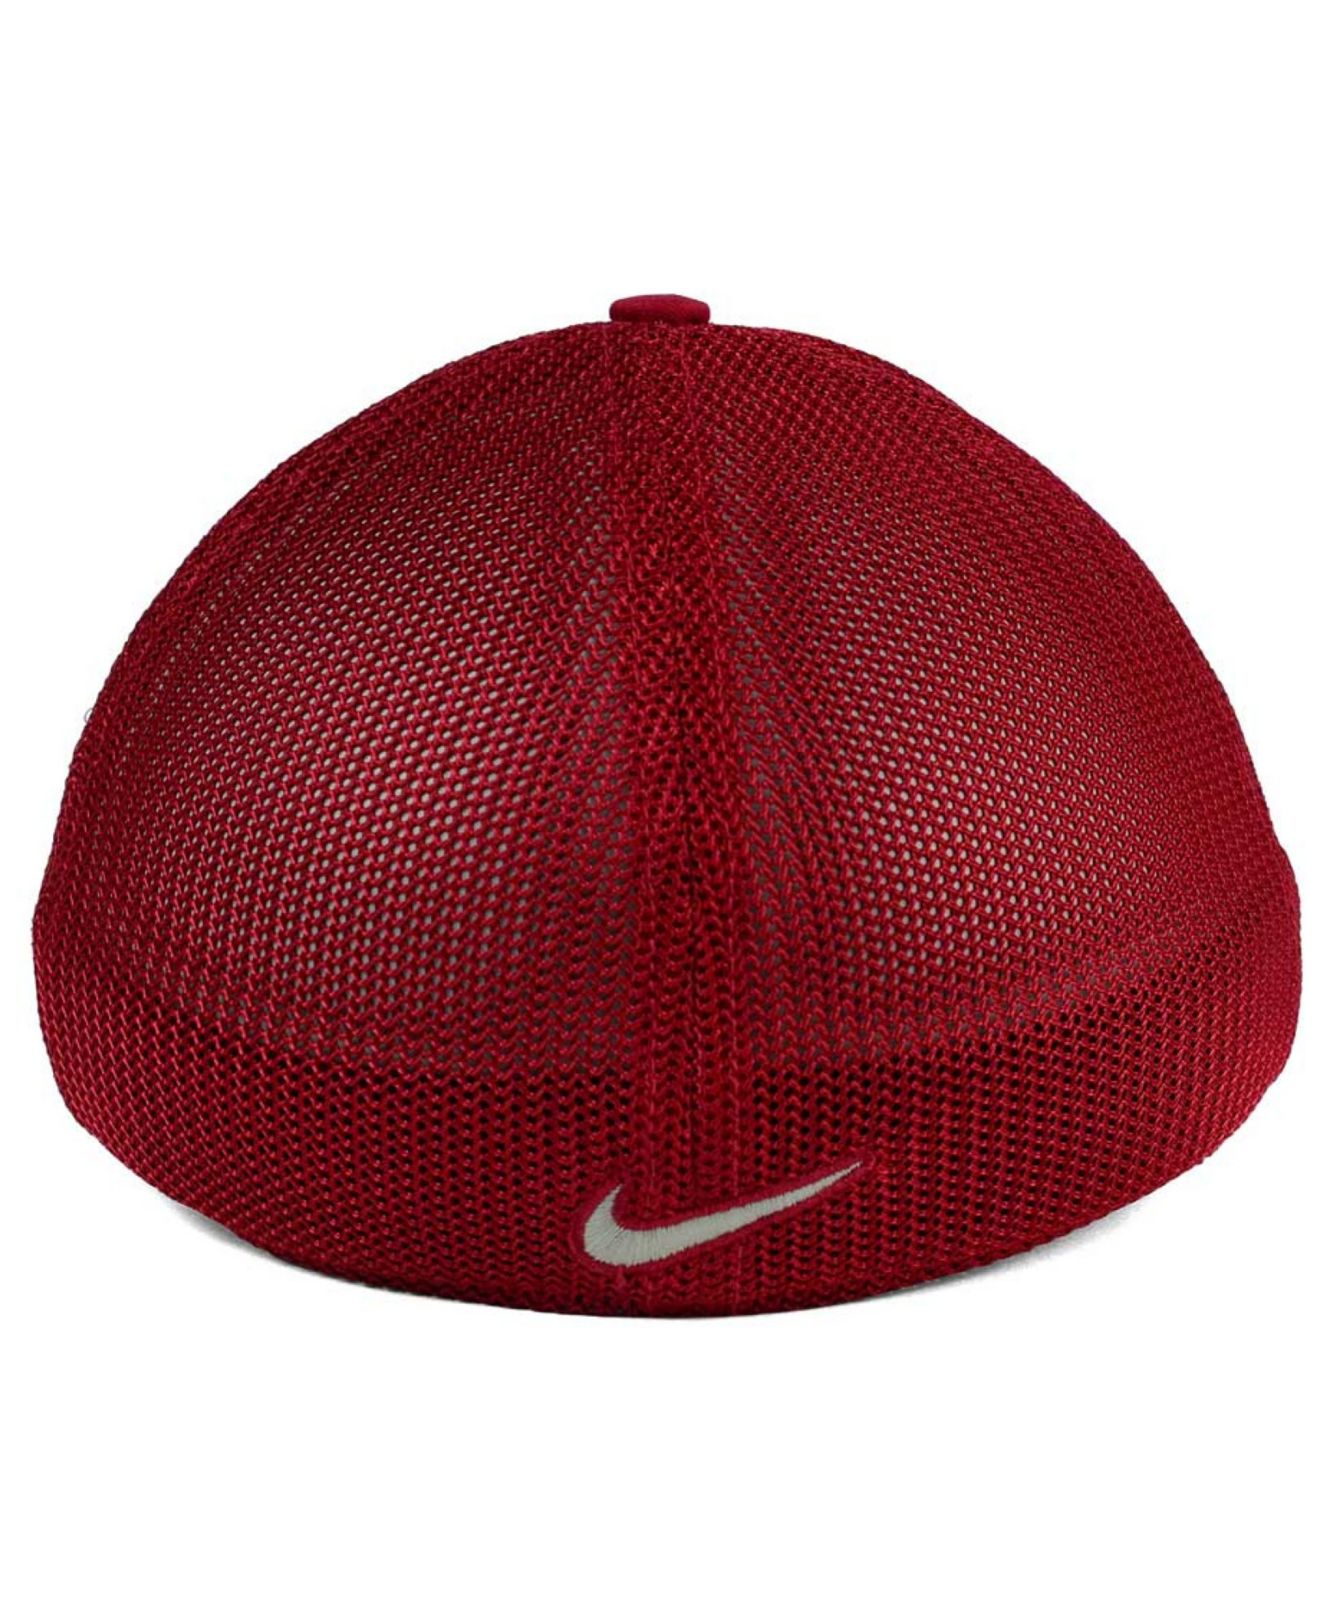 757d943fcc1 ... clearance lyst nike washington state cougars l91 mesh swoosh flex cap  in red 25ca5 52dbd